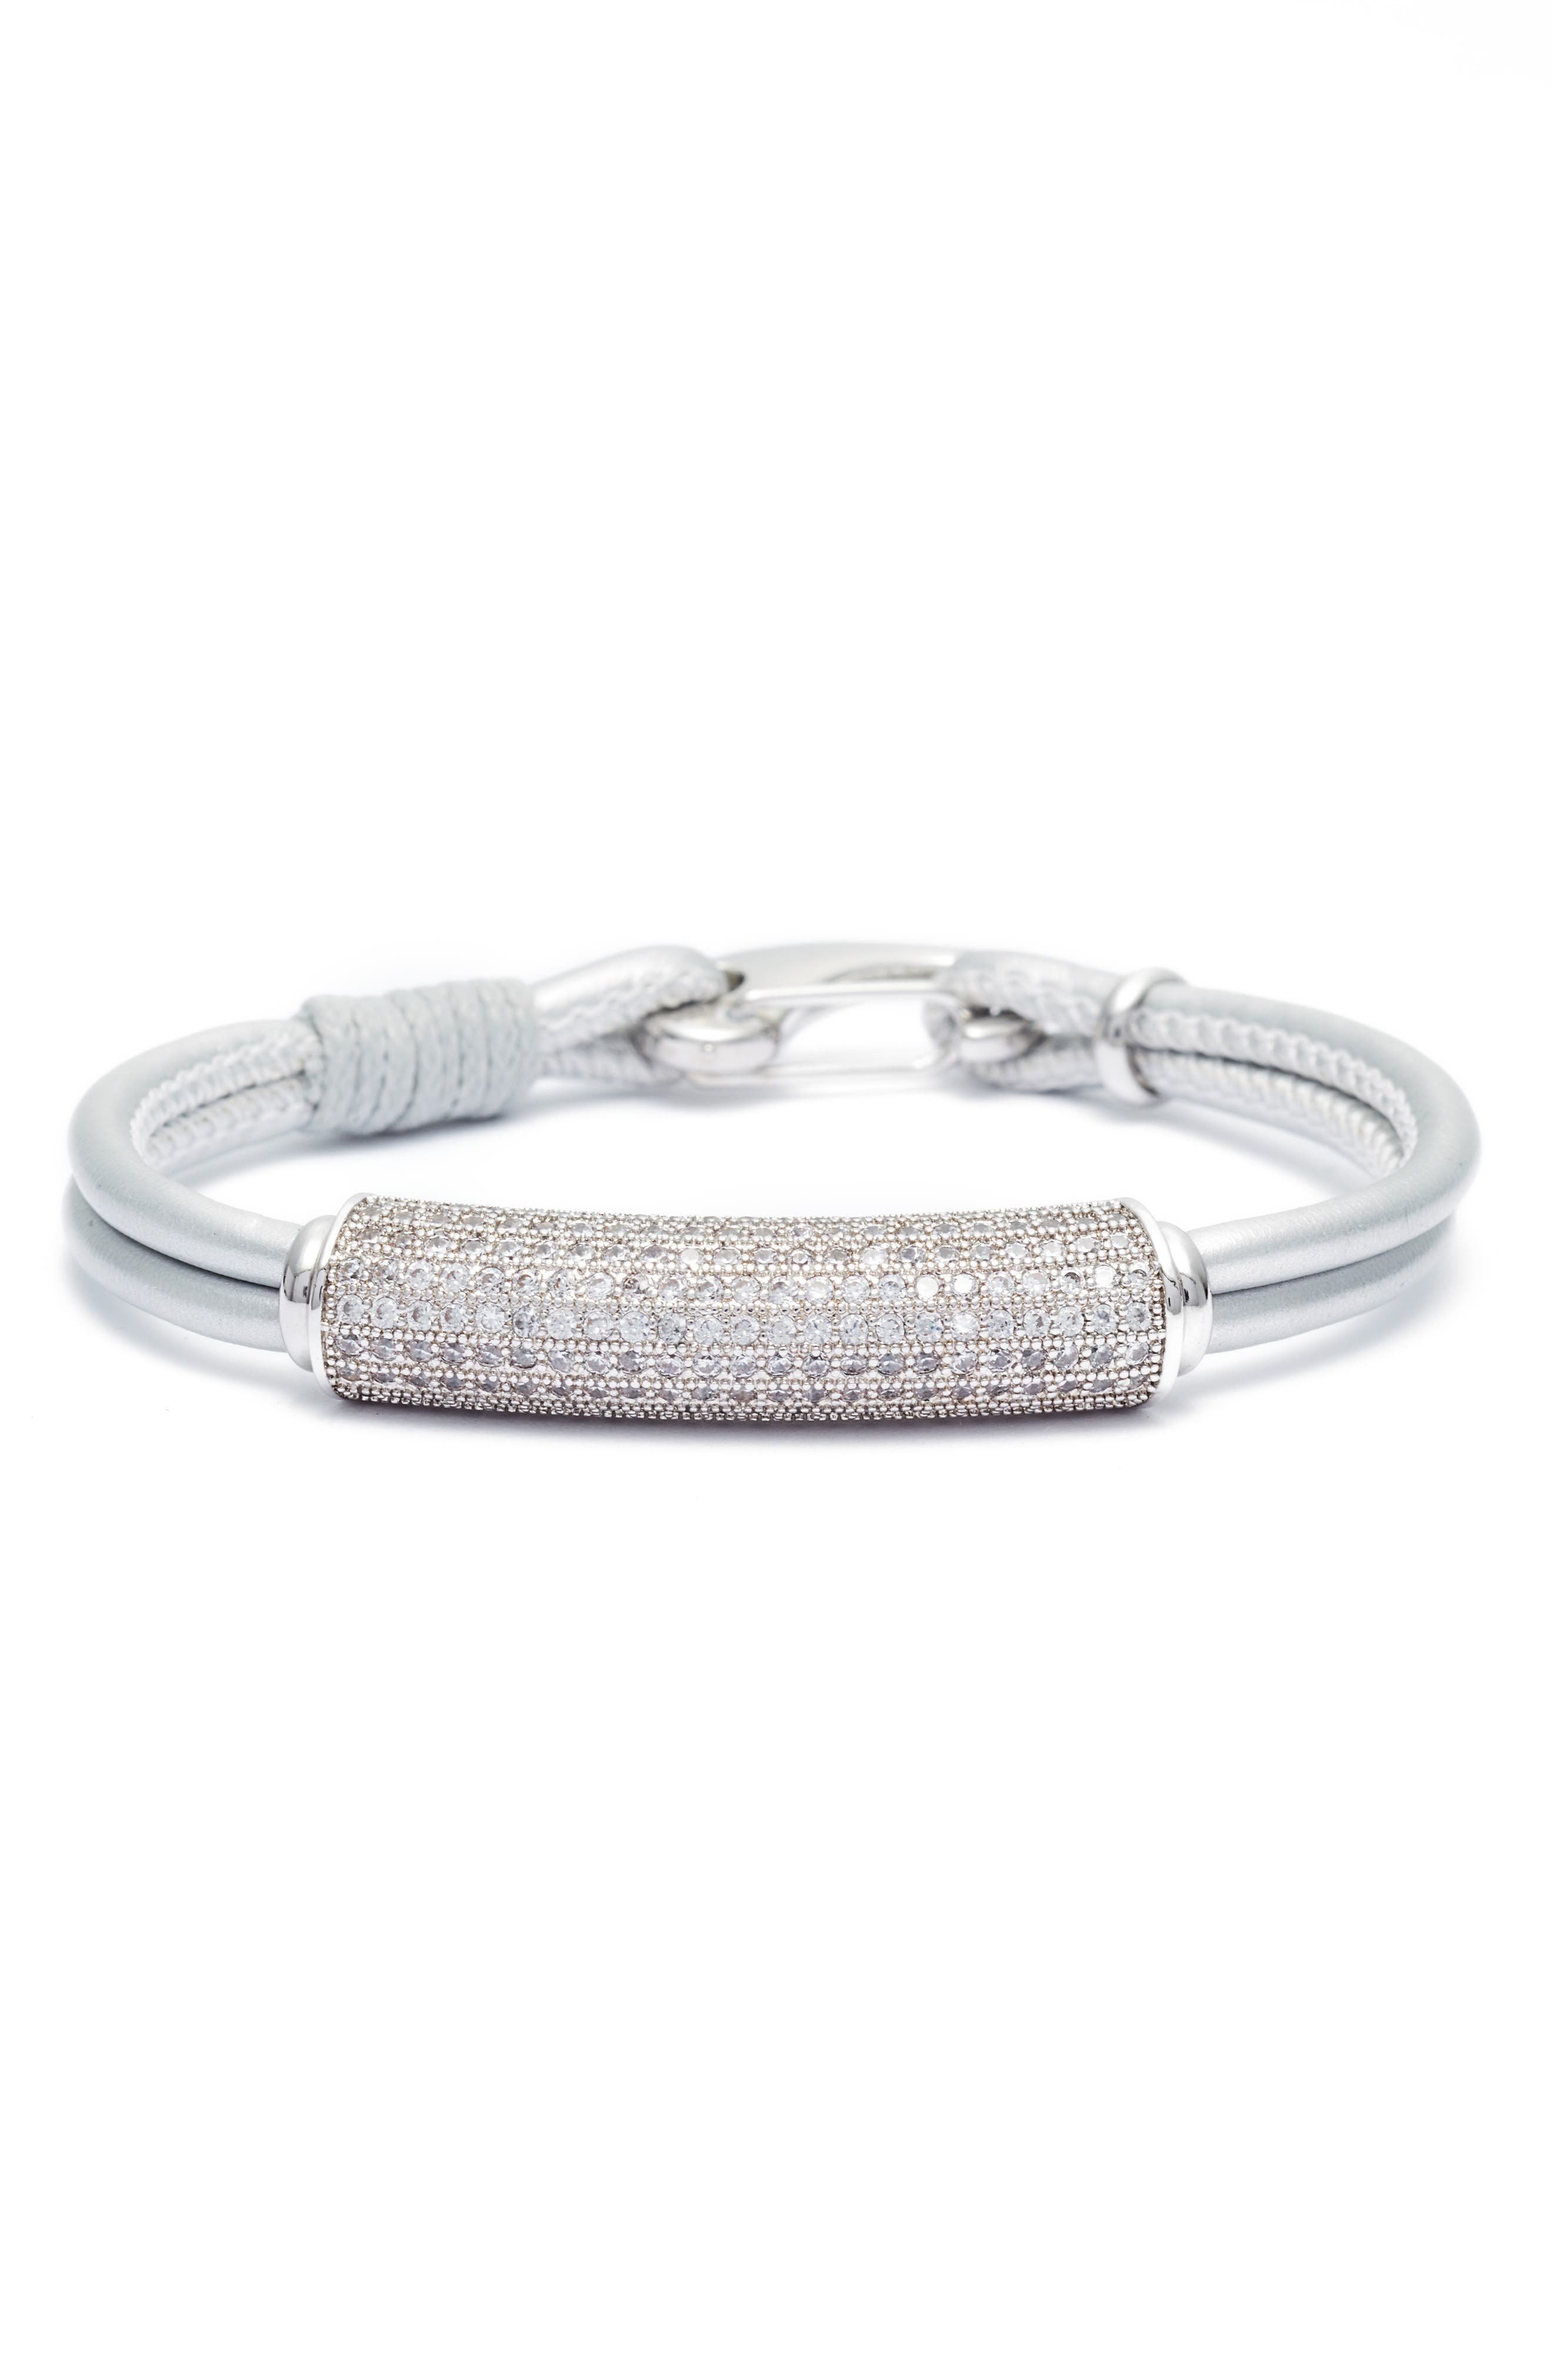 Elise M. Sorella Leather Bracelet